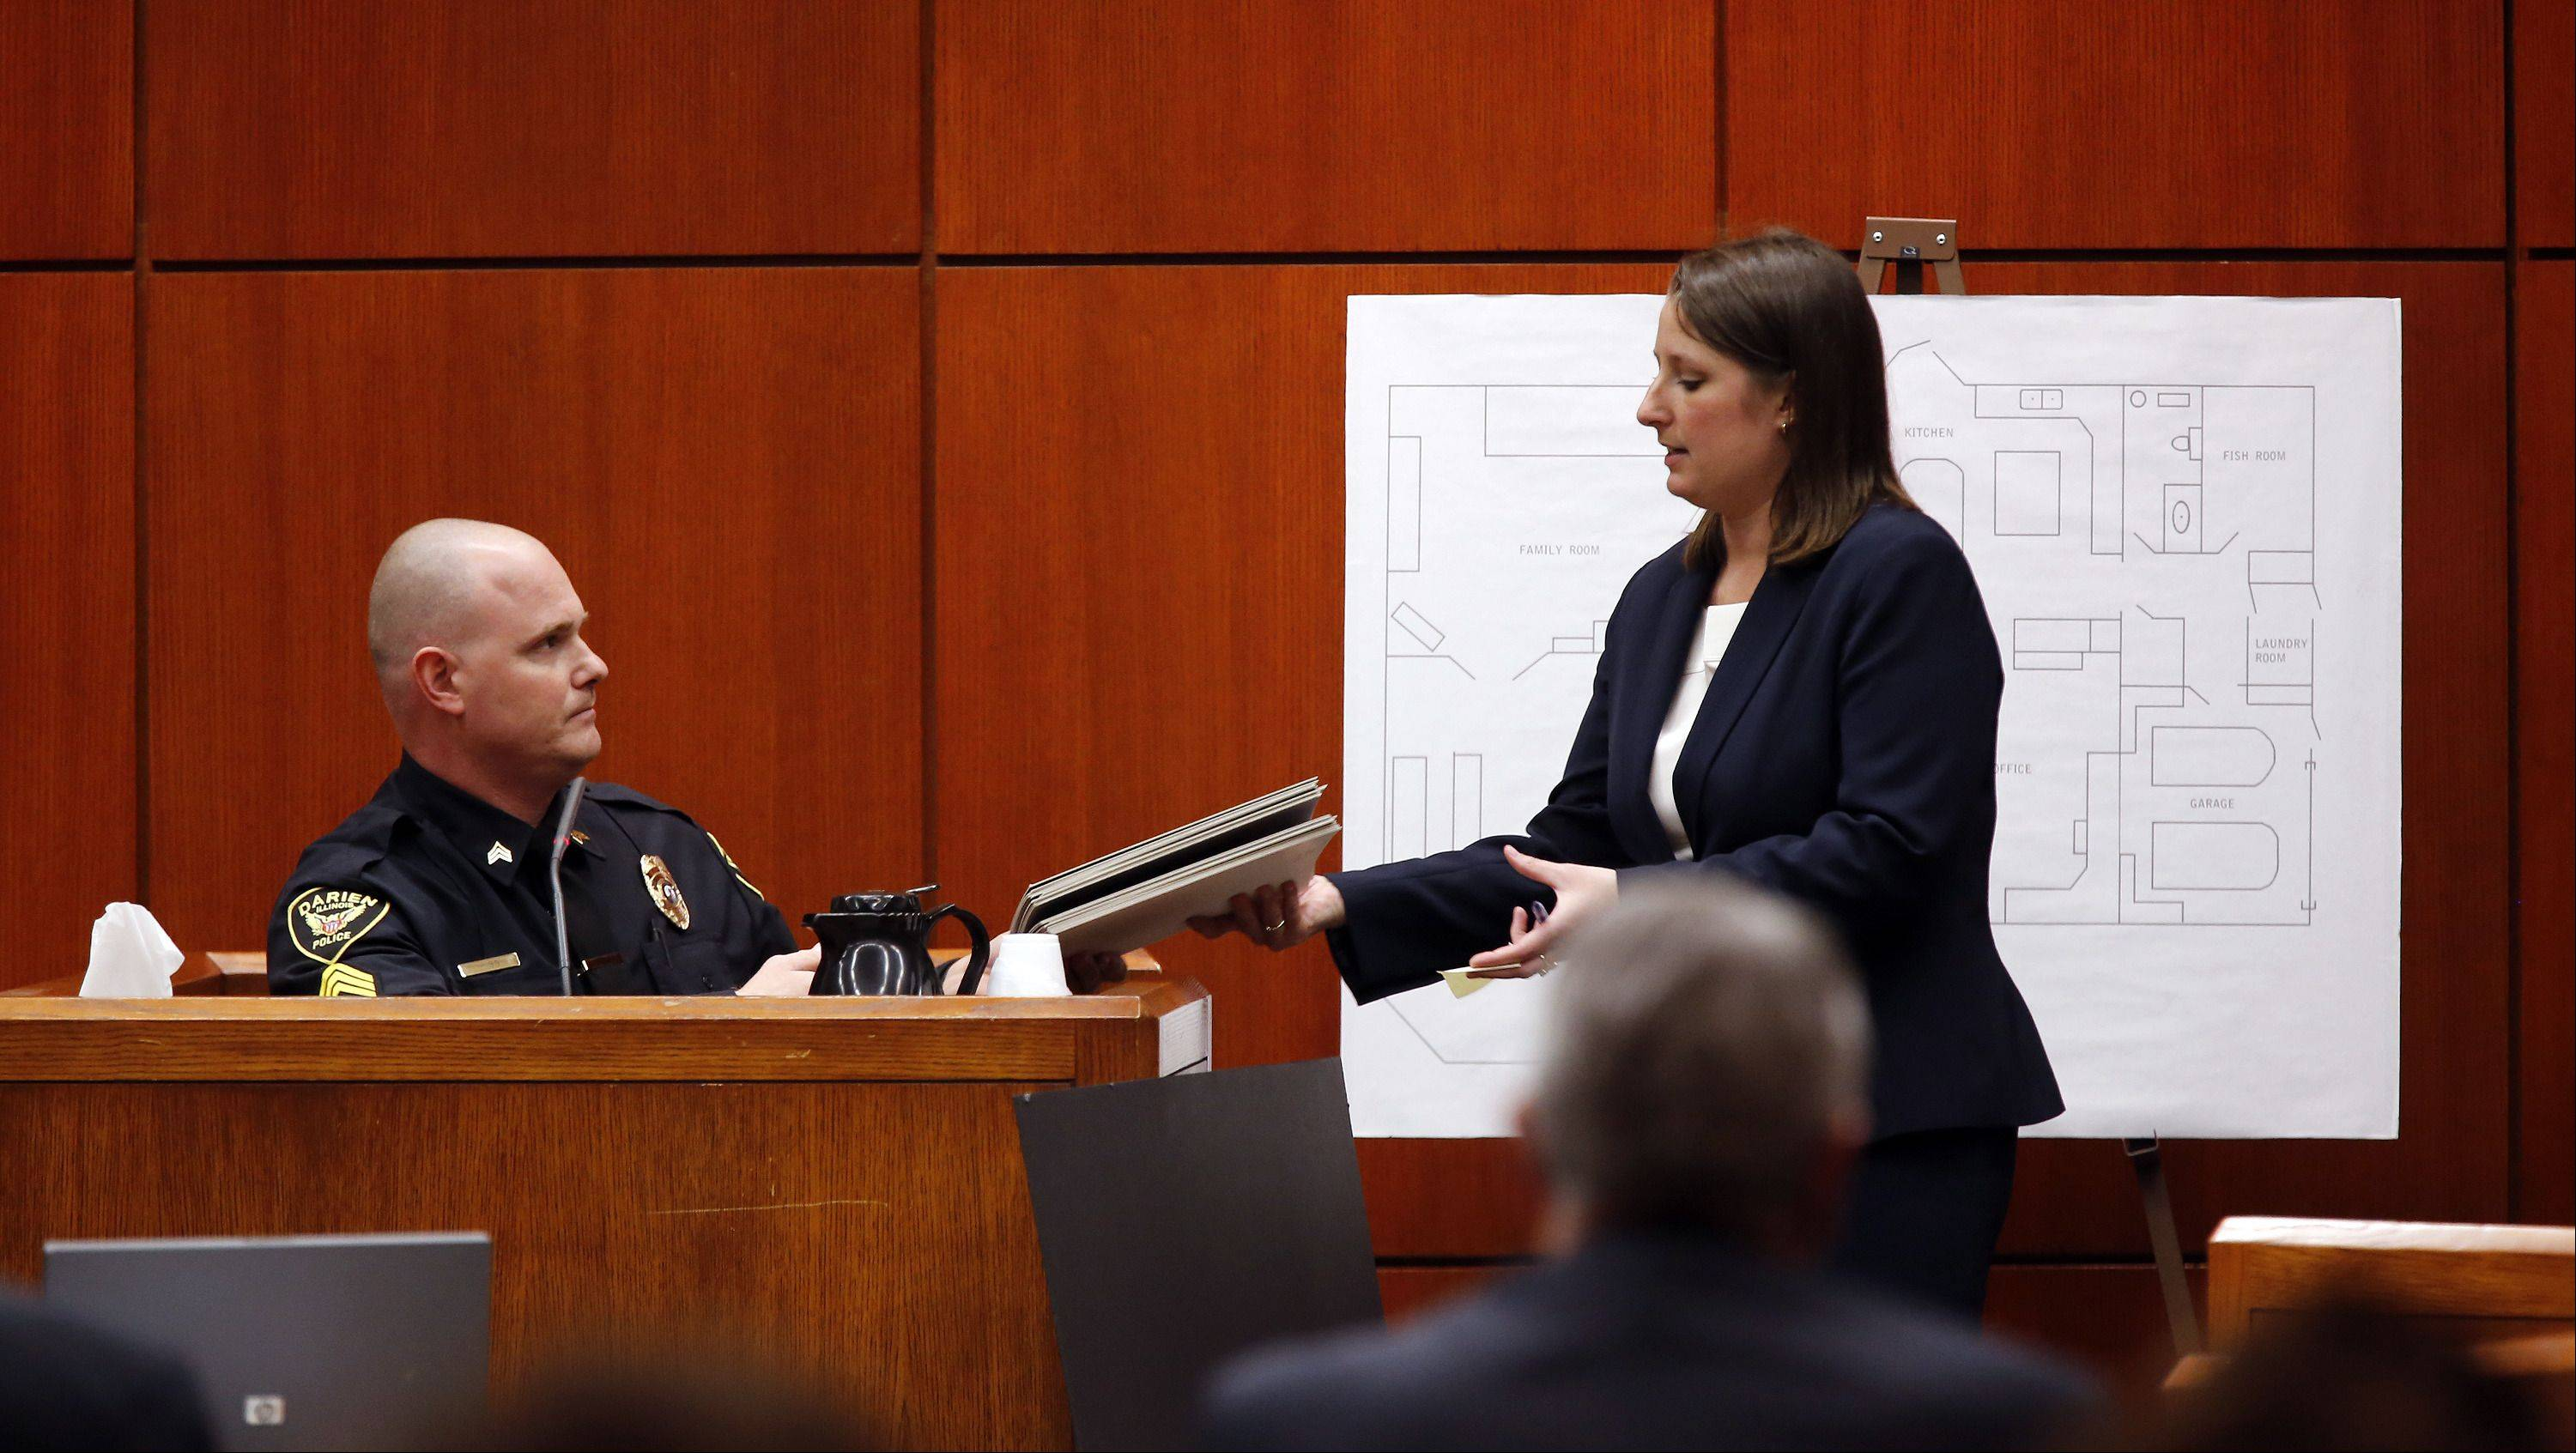 POOL/Chicago Tribune, Chuck BermanDarien police Sgt. Steve Liss, left, hands back photos he was asked to look at by DuPage County Assistant State's Attorney Amanda Meindl on Wednesday during the Johnny Borizov trial in Wheaton.